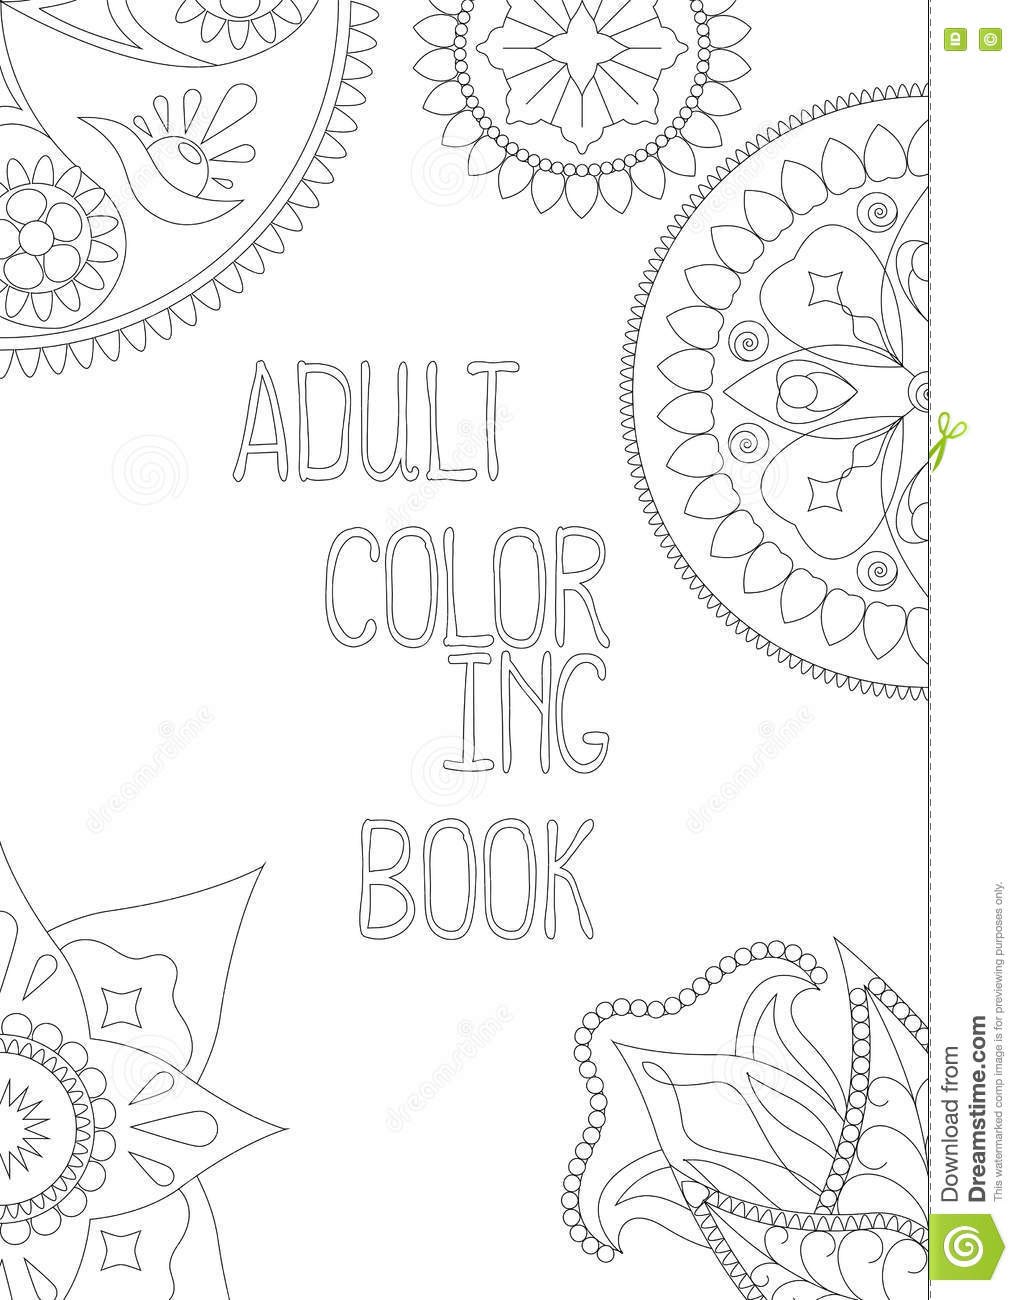 Book Cover Coloring Pages For Adults Book Best Free